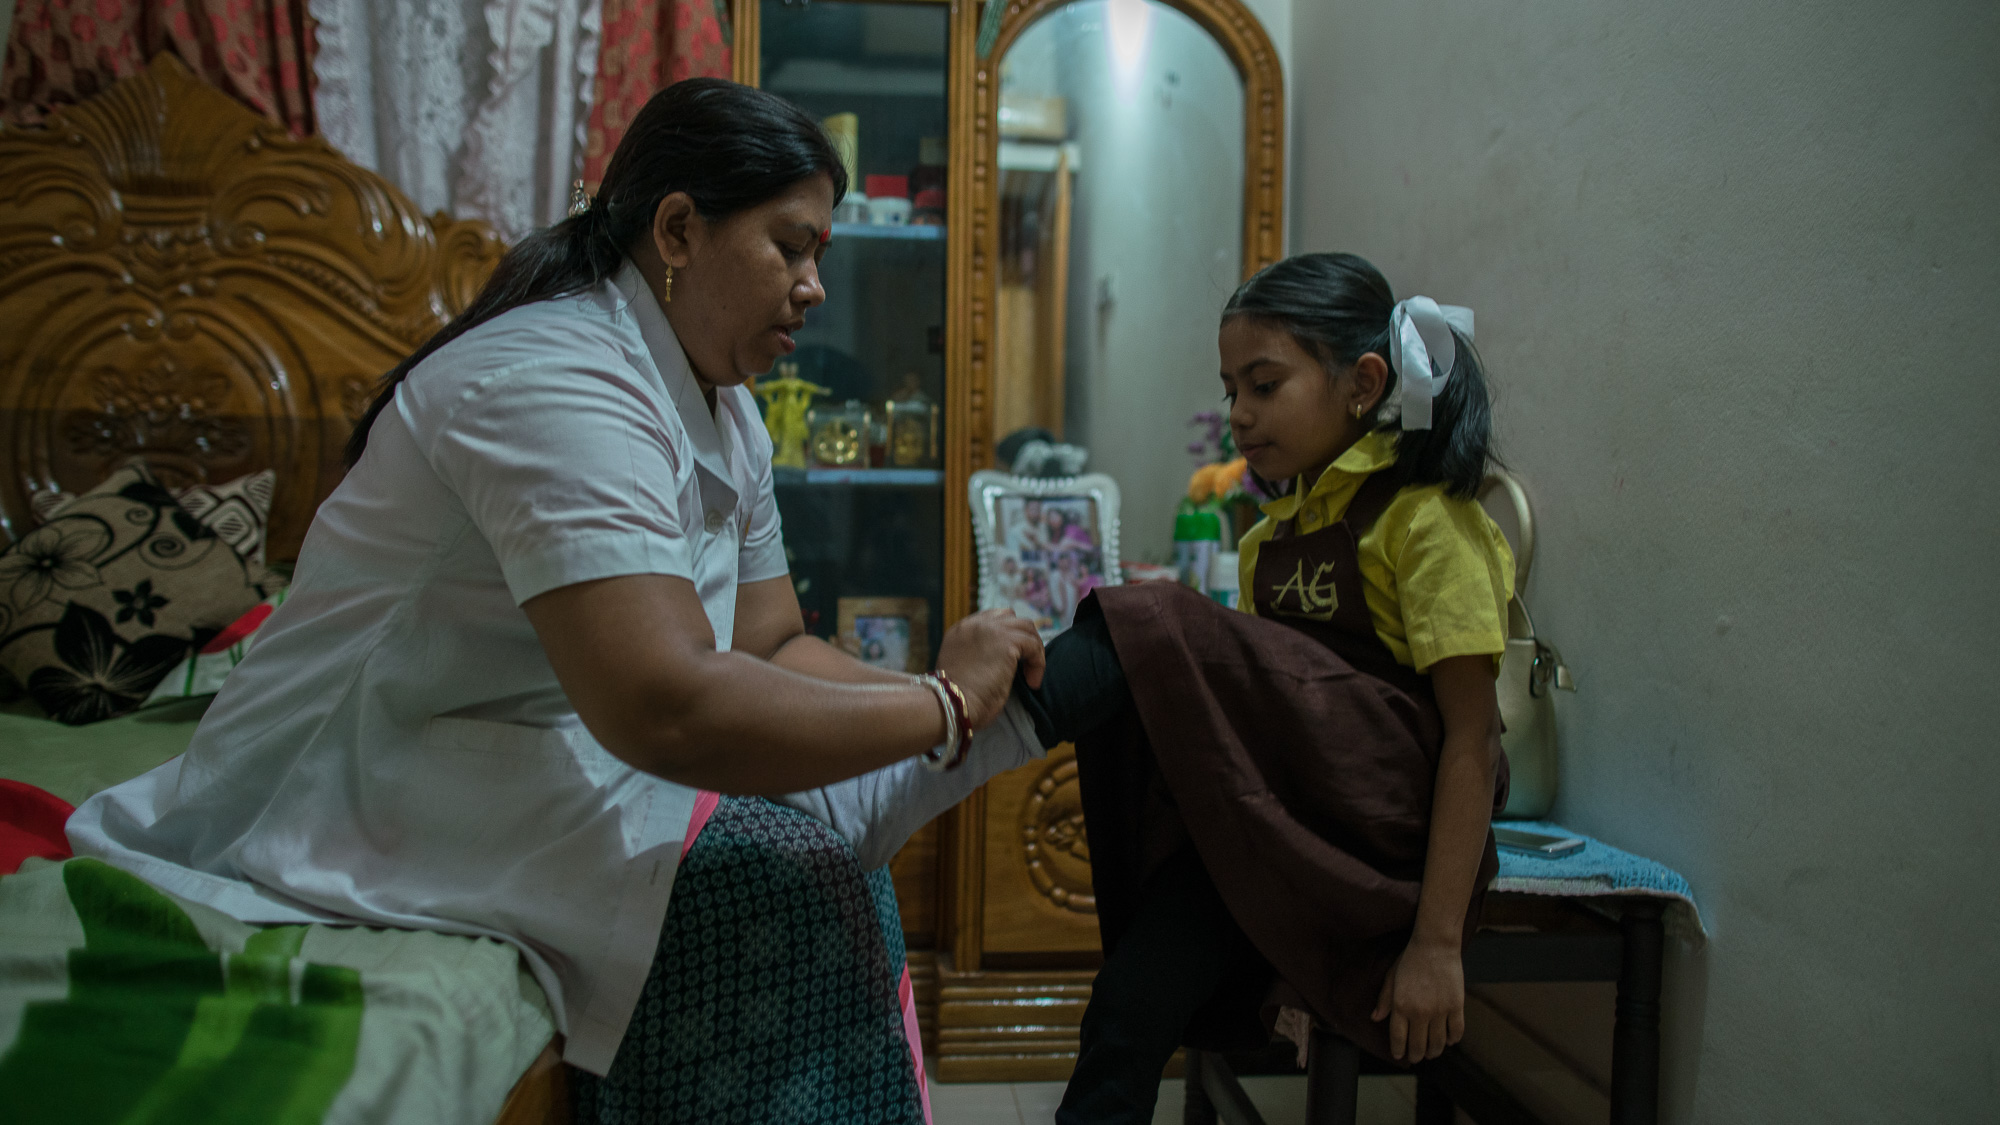 Shanta Das, a paramedic at Smiling Sun Clinic, helps her daughter, Ankita, get ready for school in the morning.